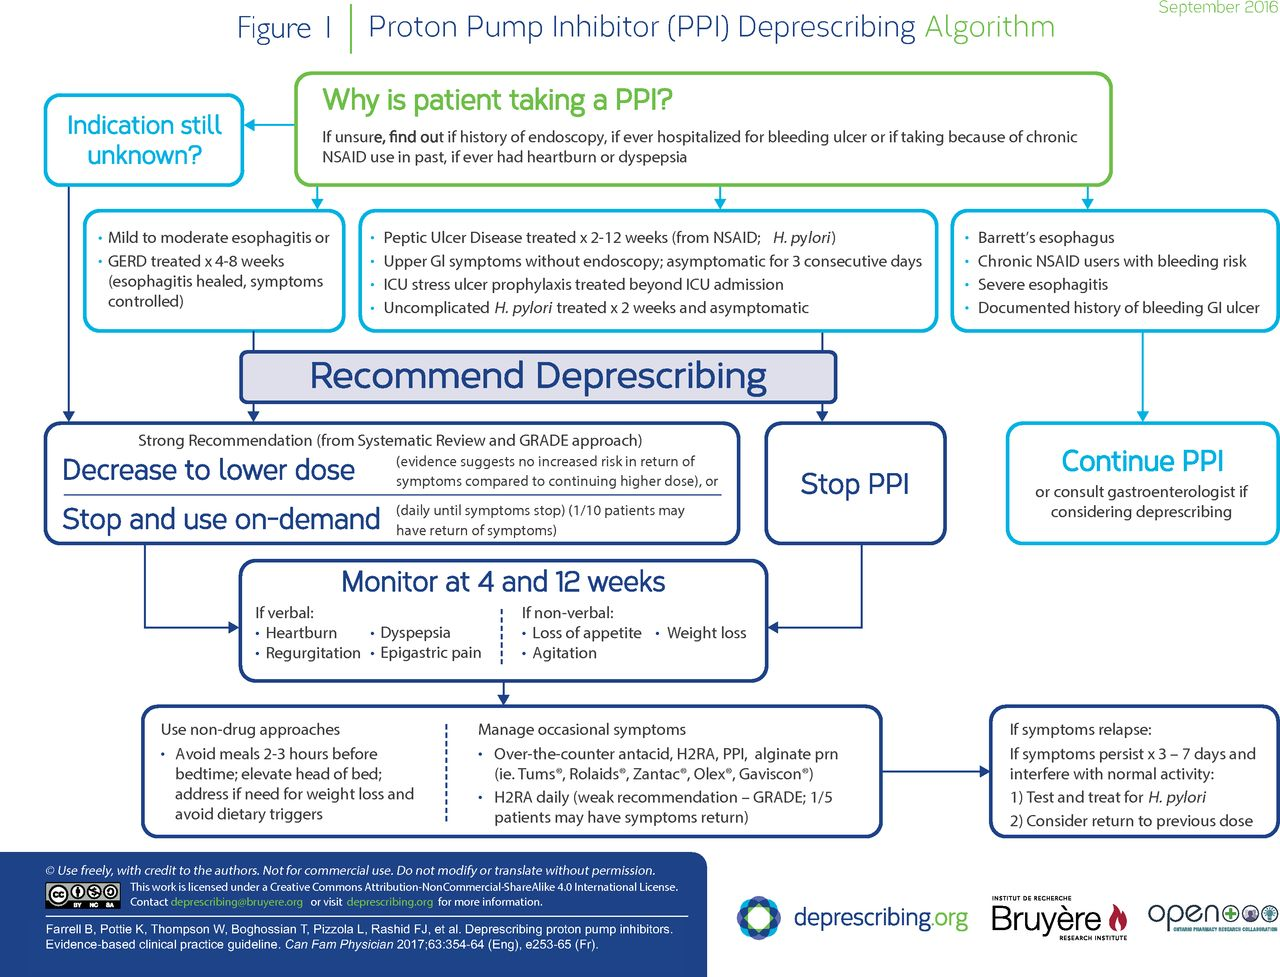 Deprescribing proton pump inhibitors | The College of Family